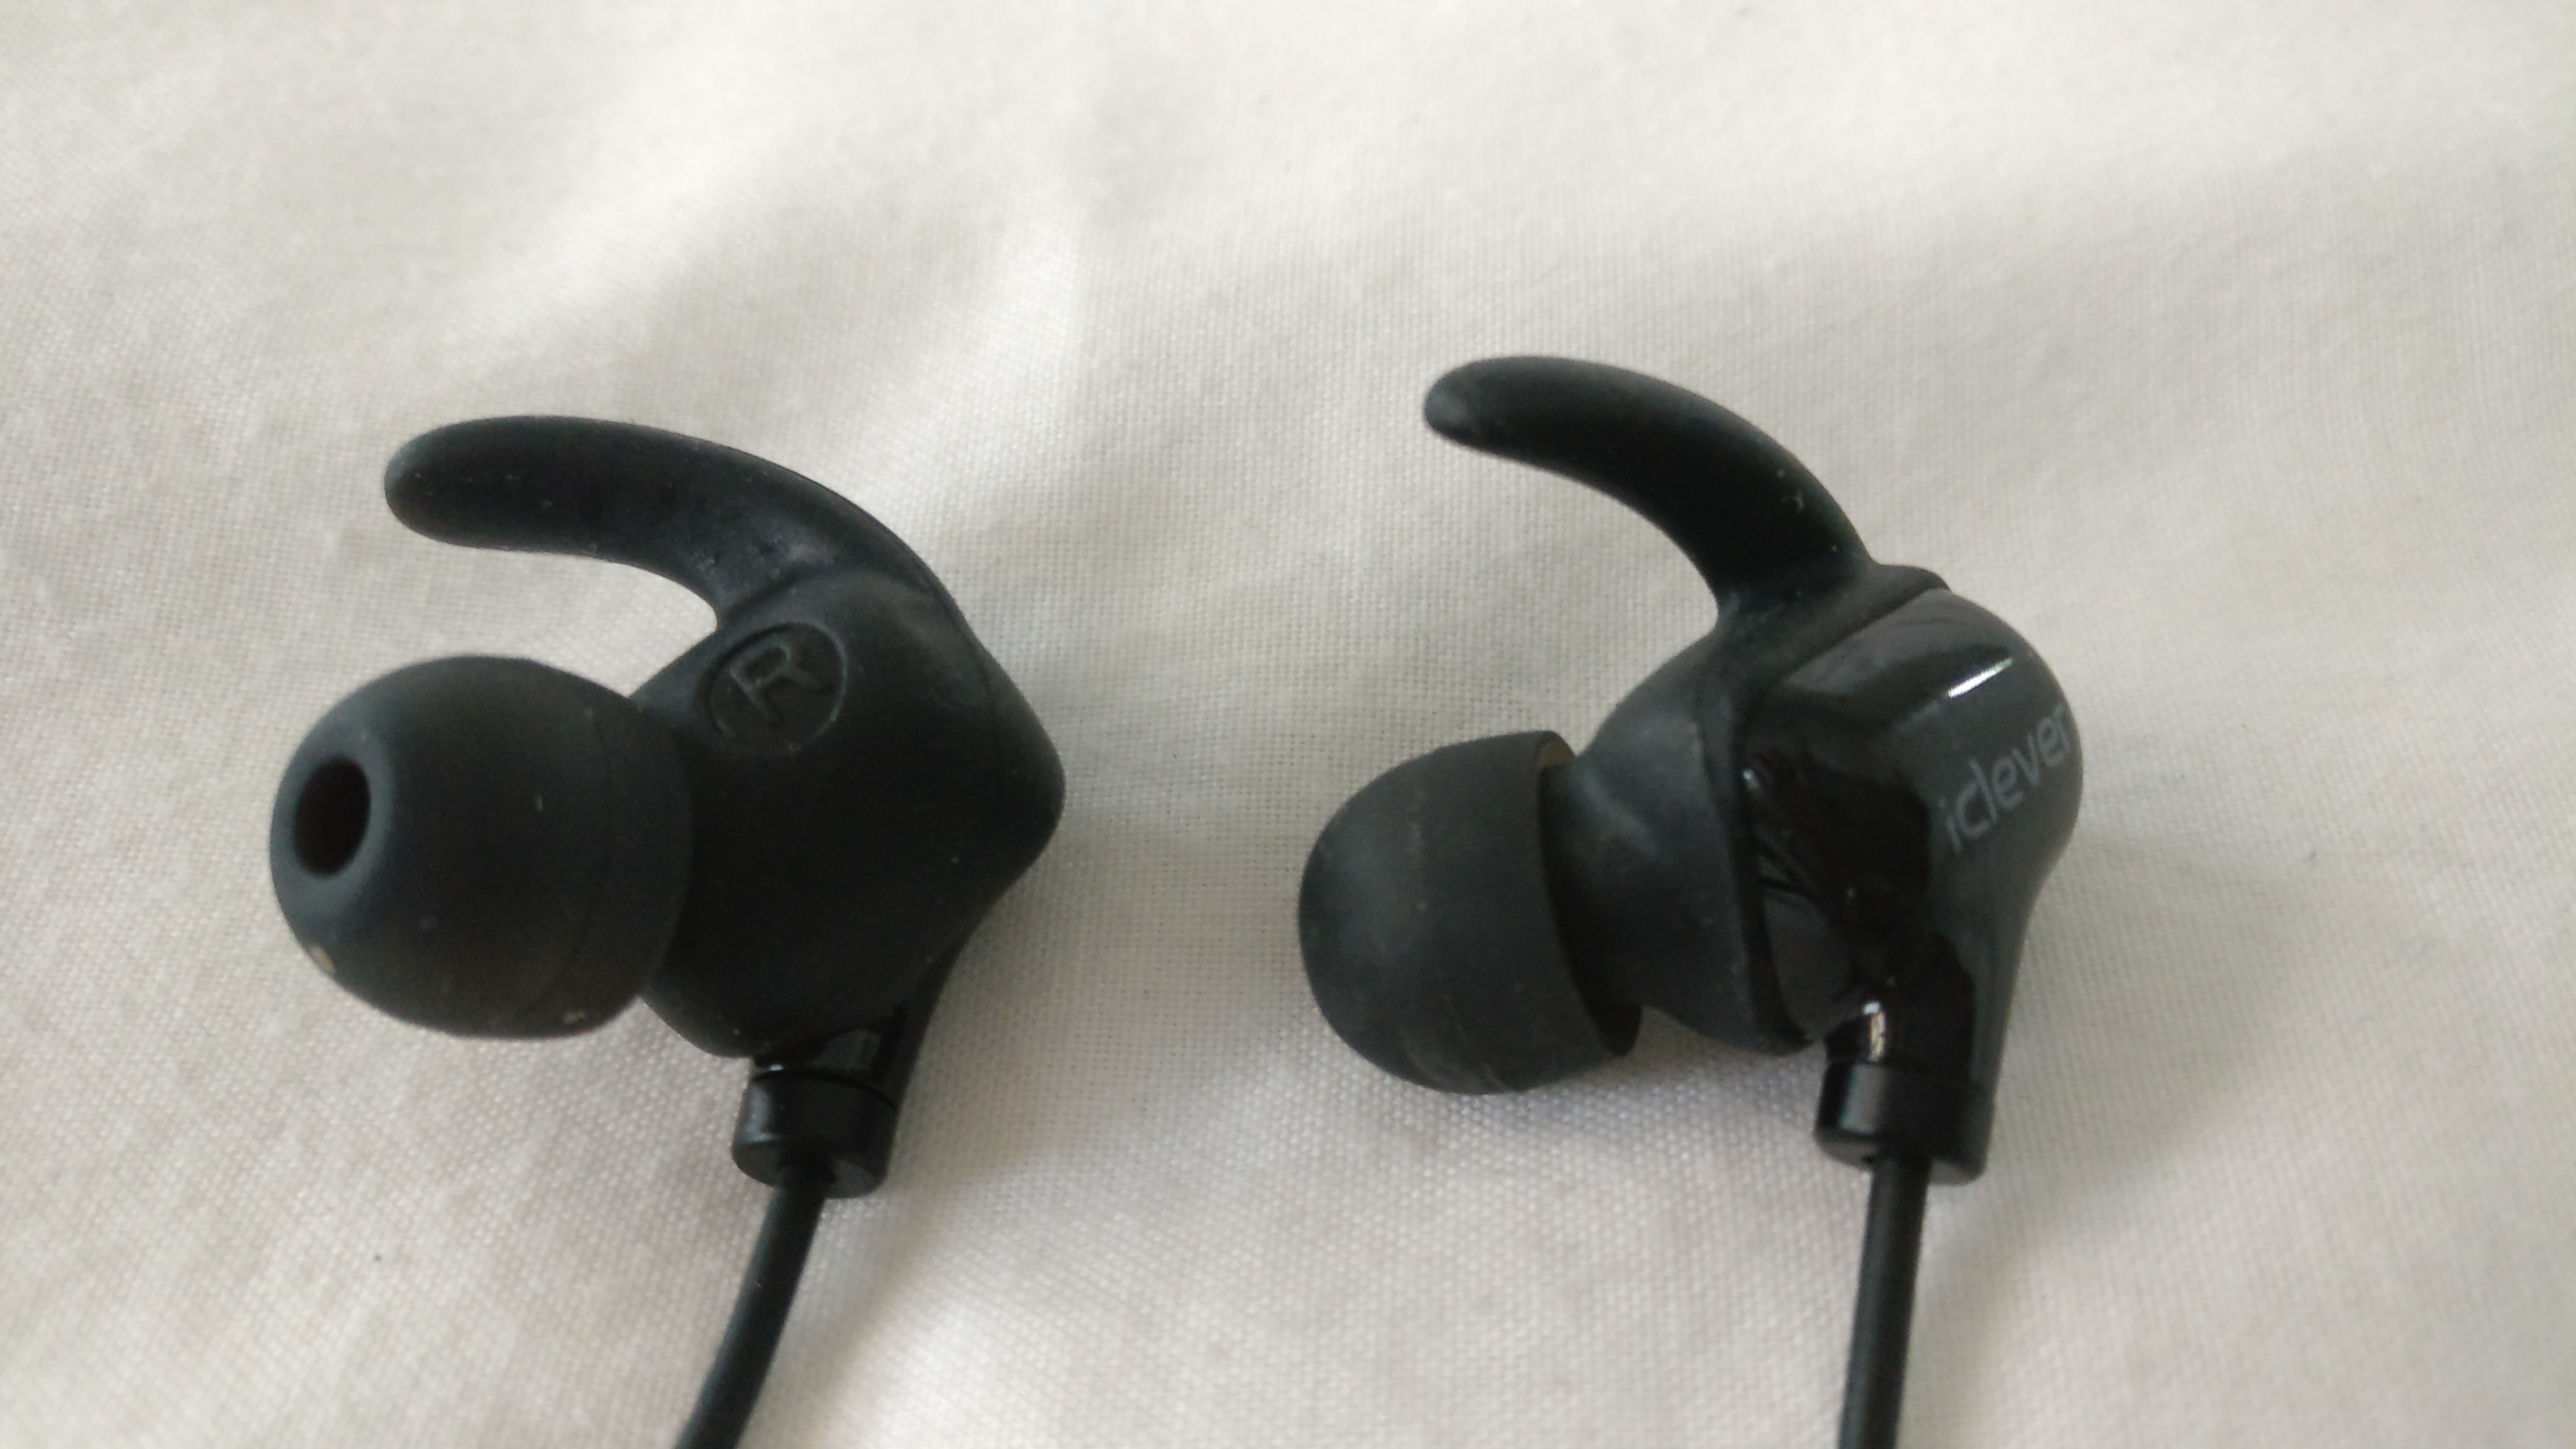 iClever BTH20 Bluetooth Headphones Review